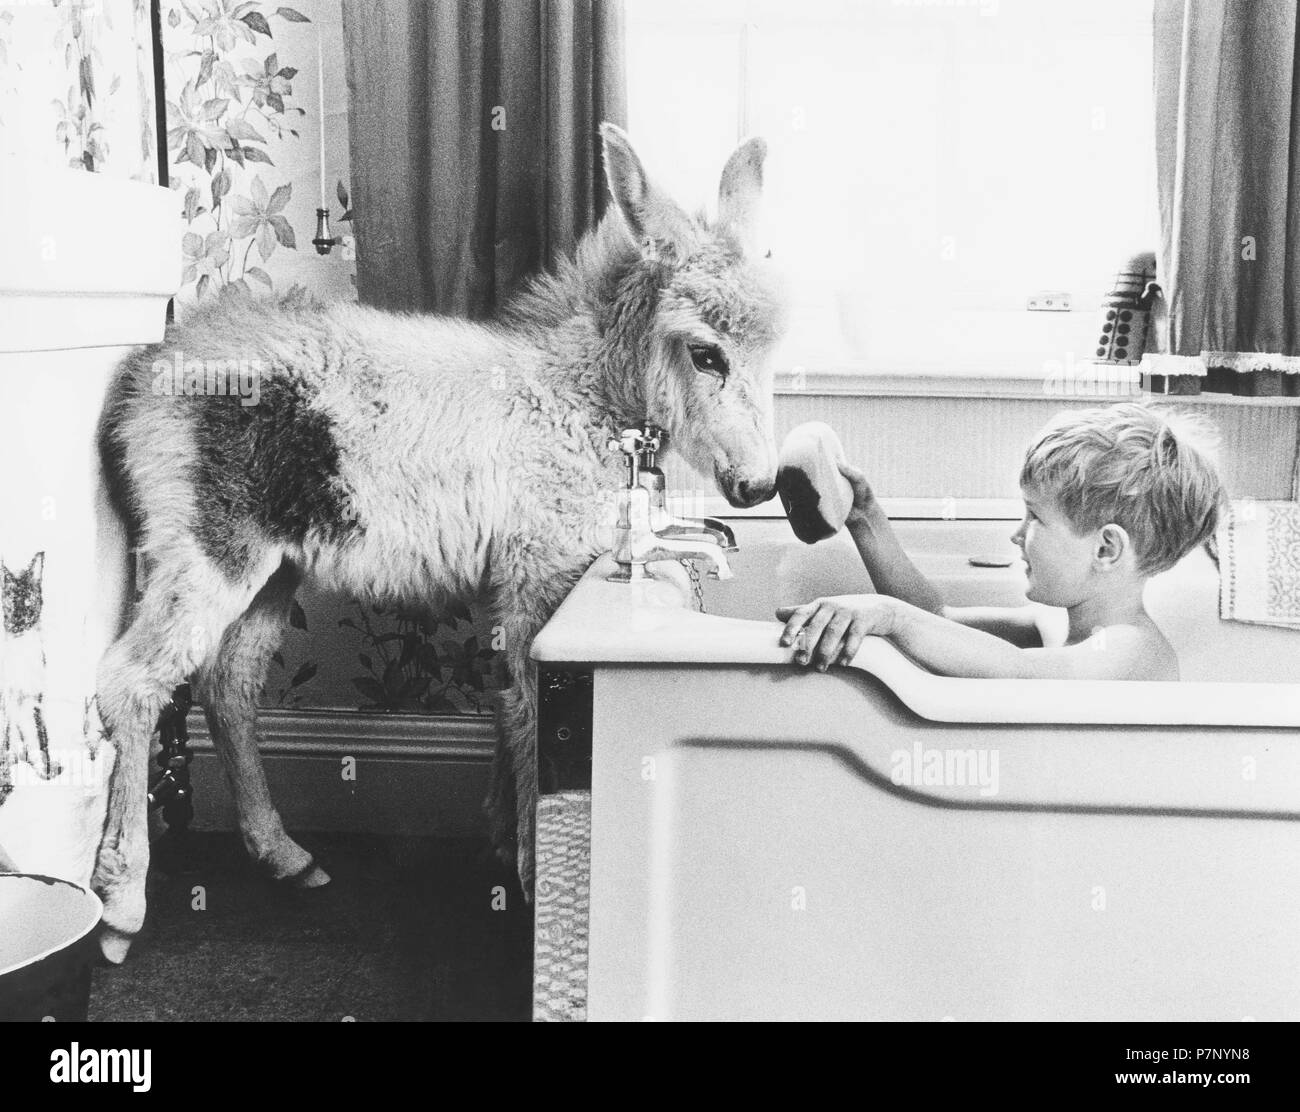 Child baths in bath tub with donkey standing in the bathroom, England, Great Britain - Stock Image